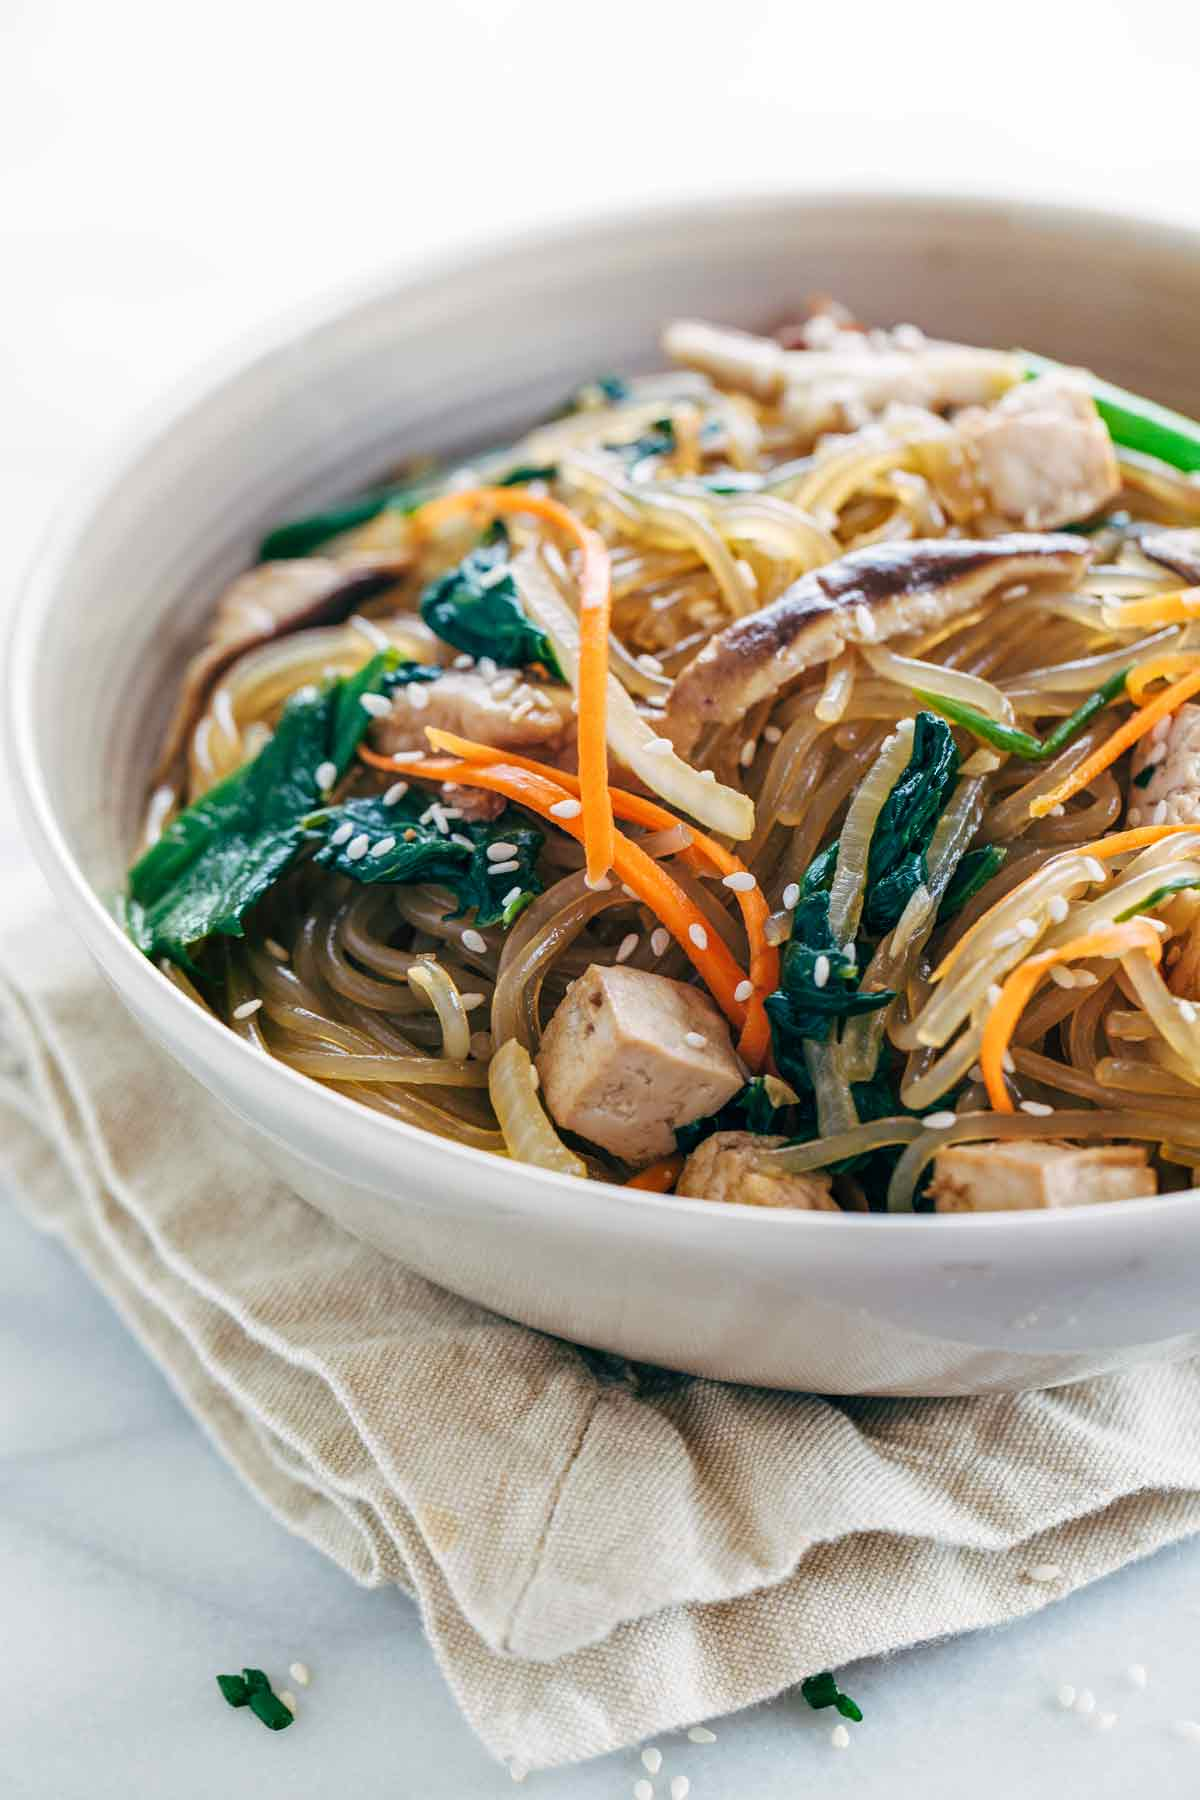 Bowl of Japchae Korean noodles with cubes of tofu and slices of mushrooms